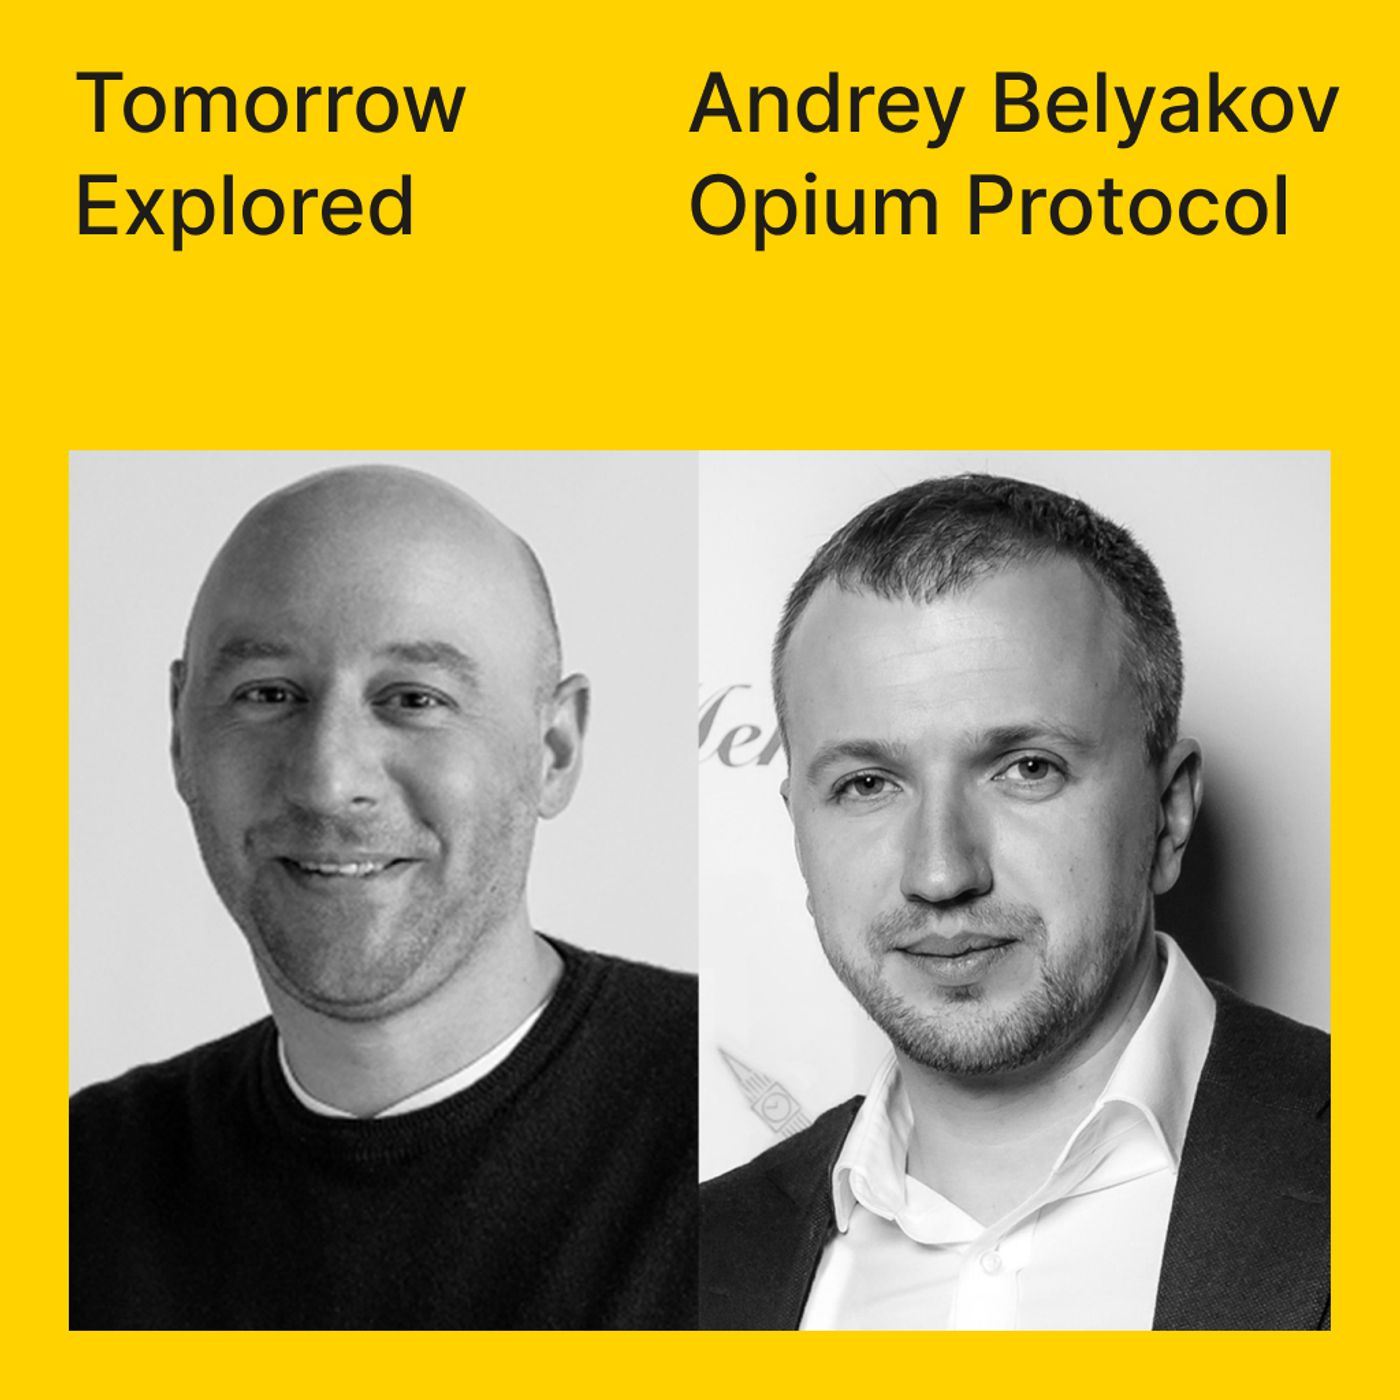 Decentralized derivatives, with Andrey Belyakov of Opium Protocol